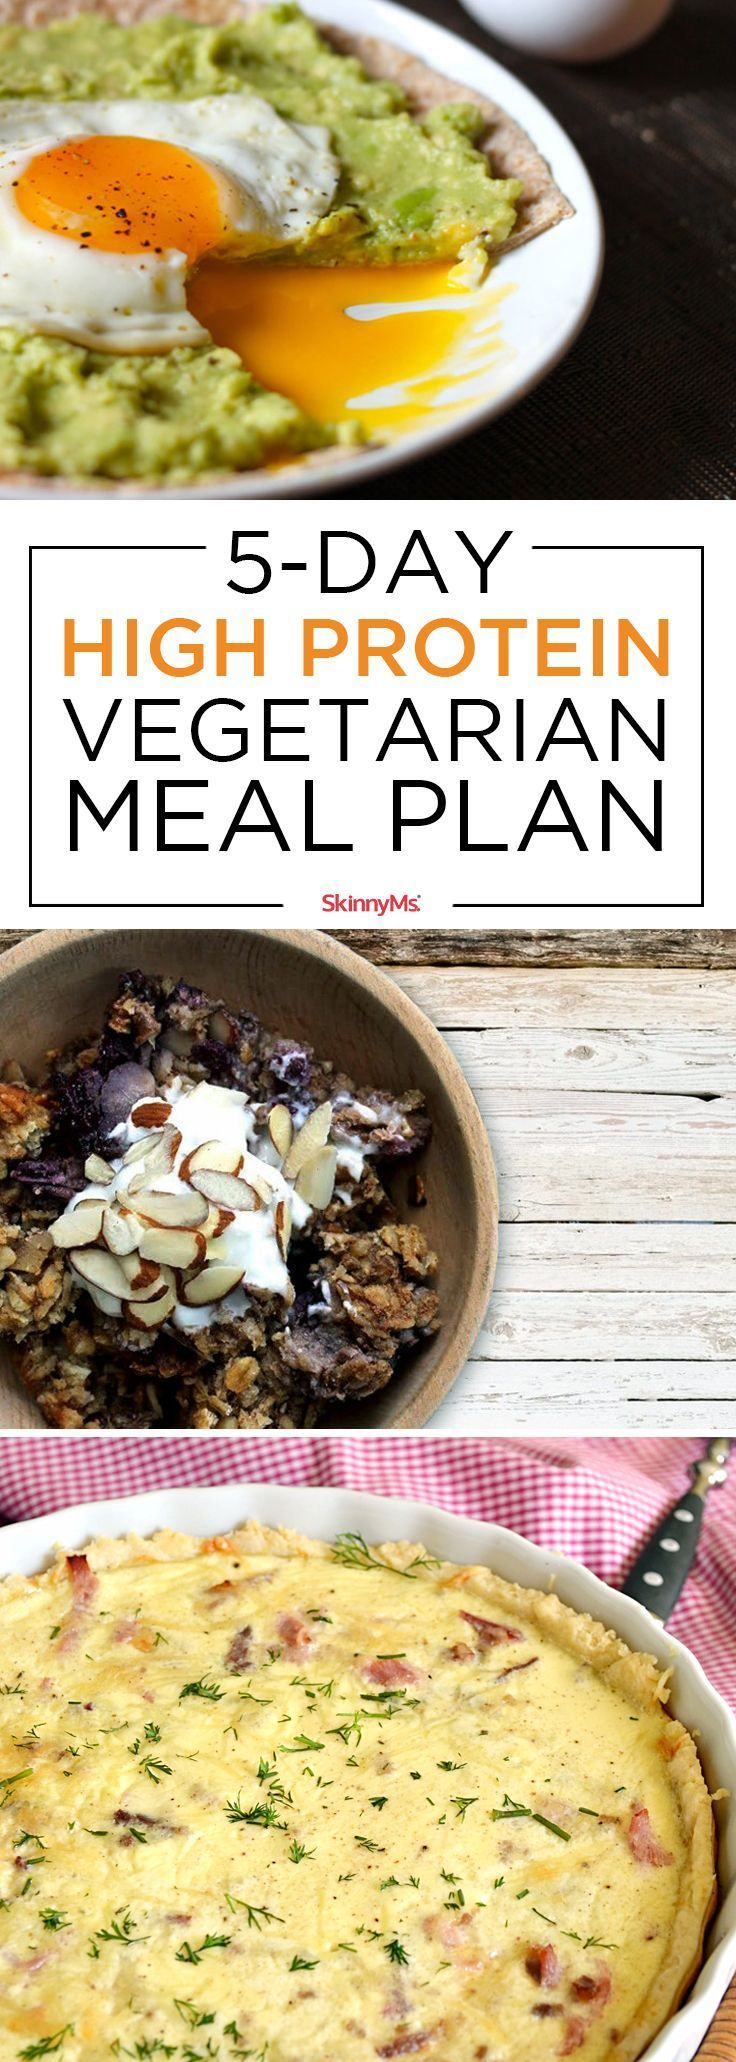 5-Day High-Protein Vegetarian Meal Plan